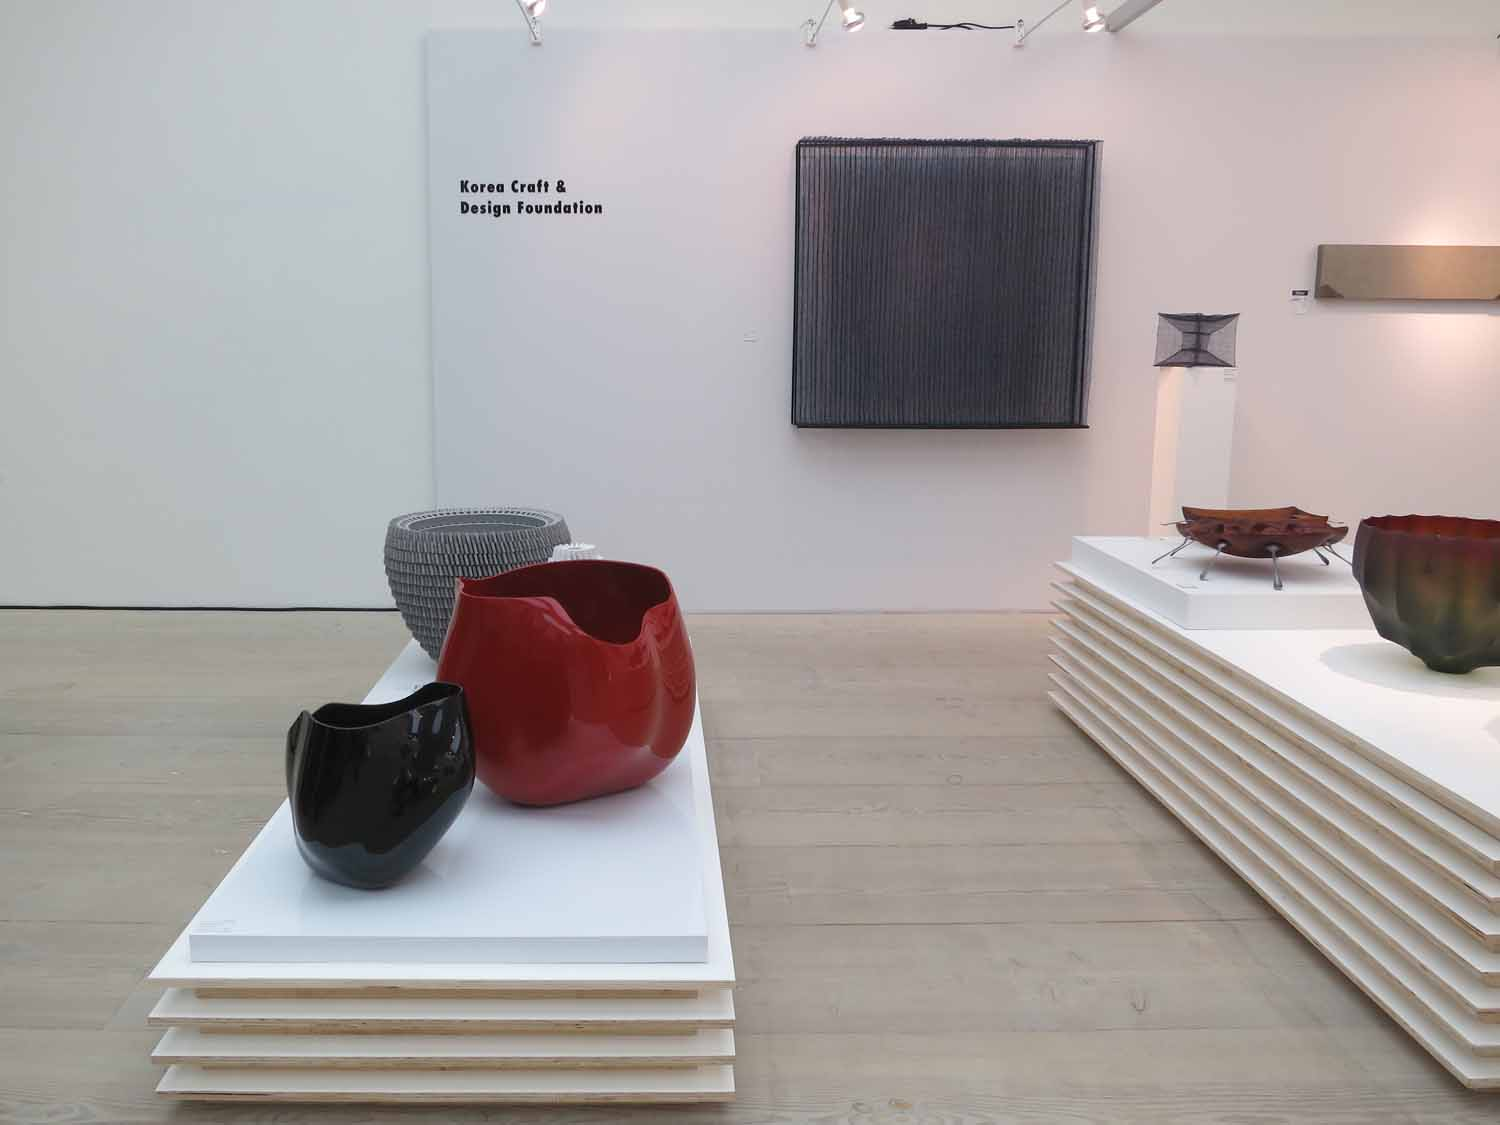 korean furniture design. The Korea Craft And Design Foundation Stall At Collect 2015 Korean Furniture R